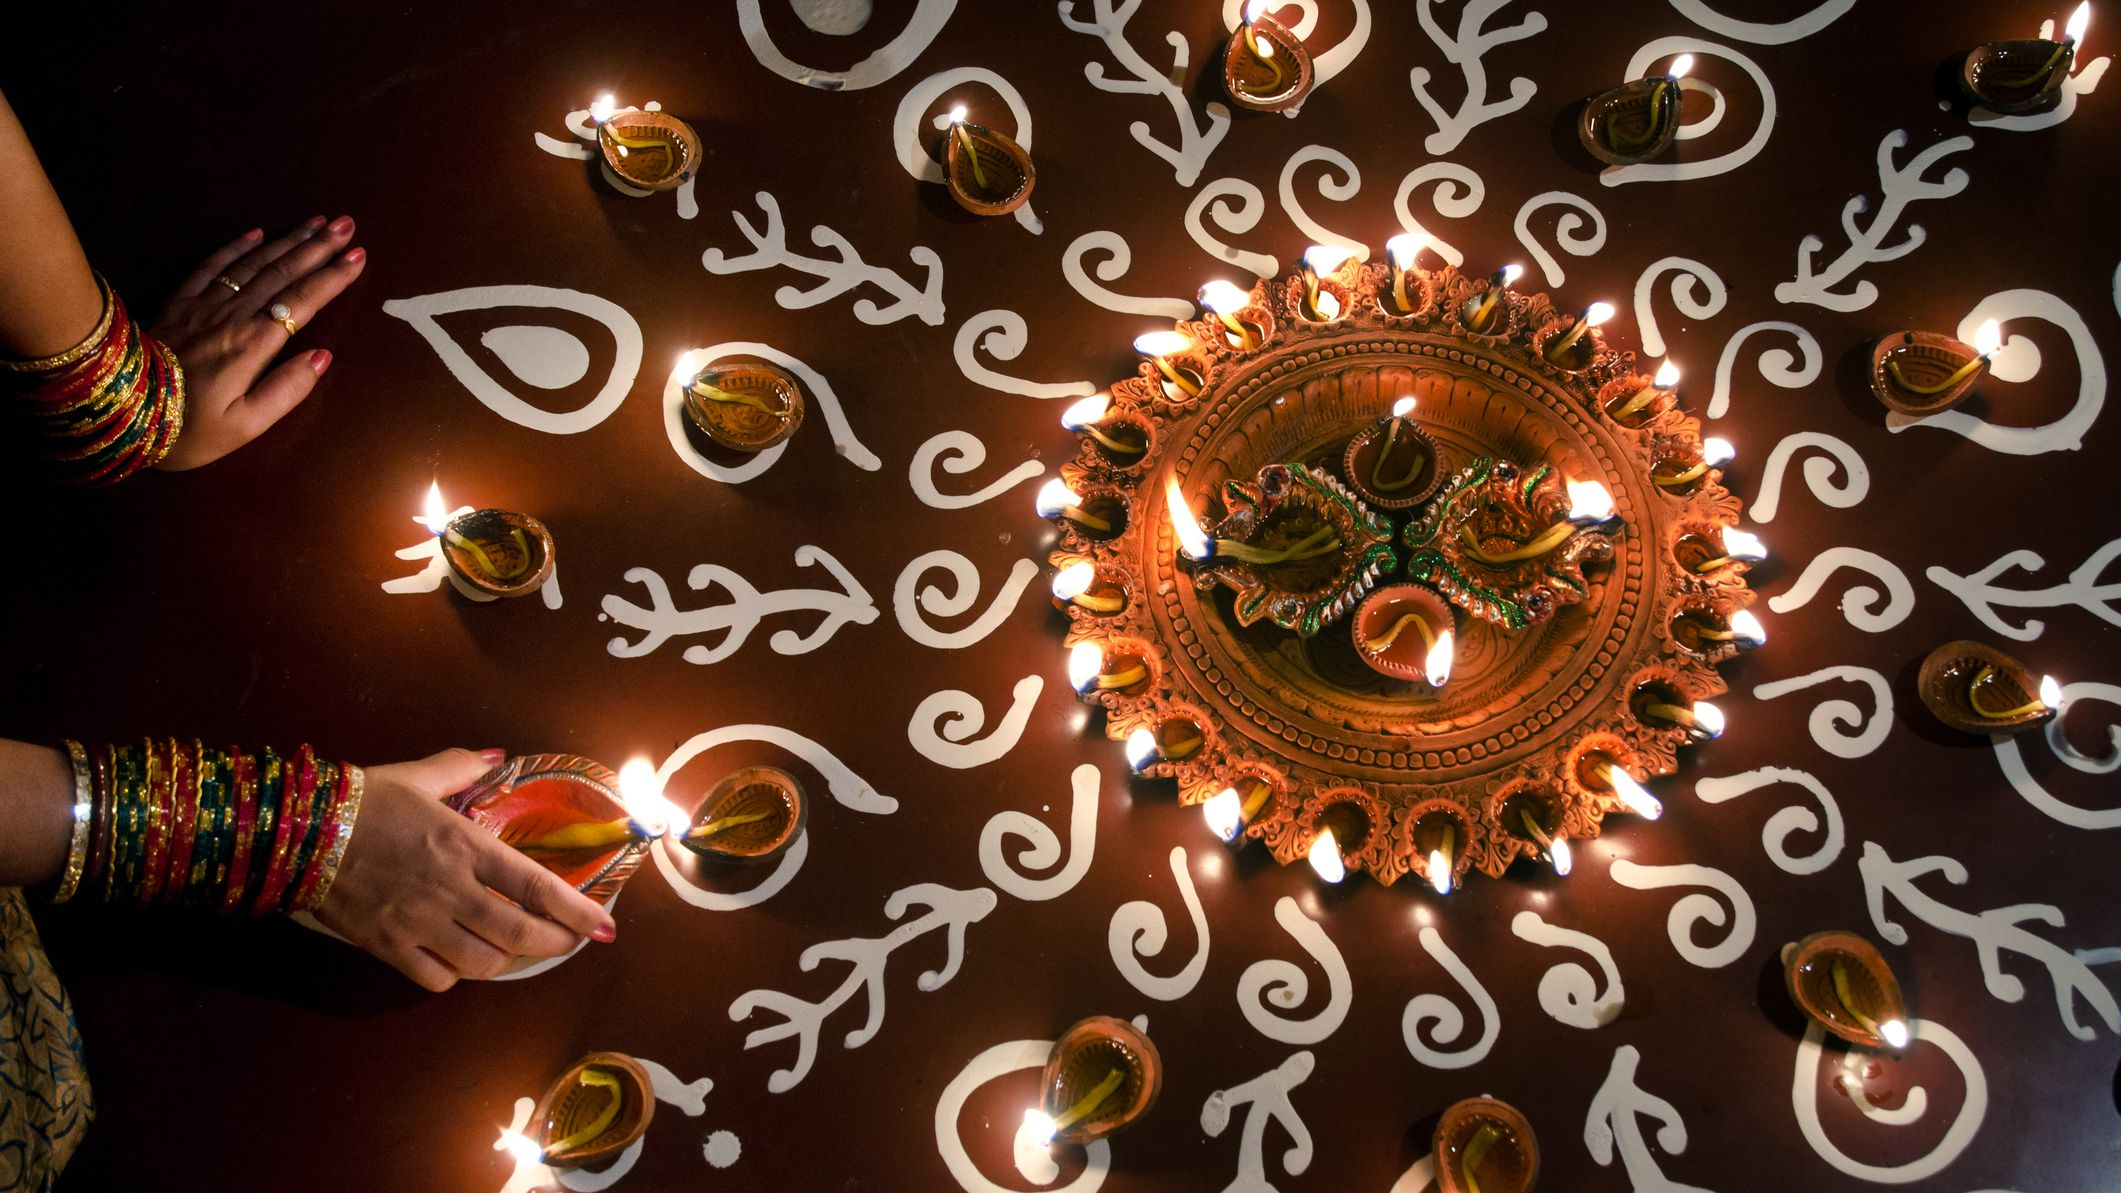 Photo Gallery 15 Captivating Pictures Of Diwali In India